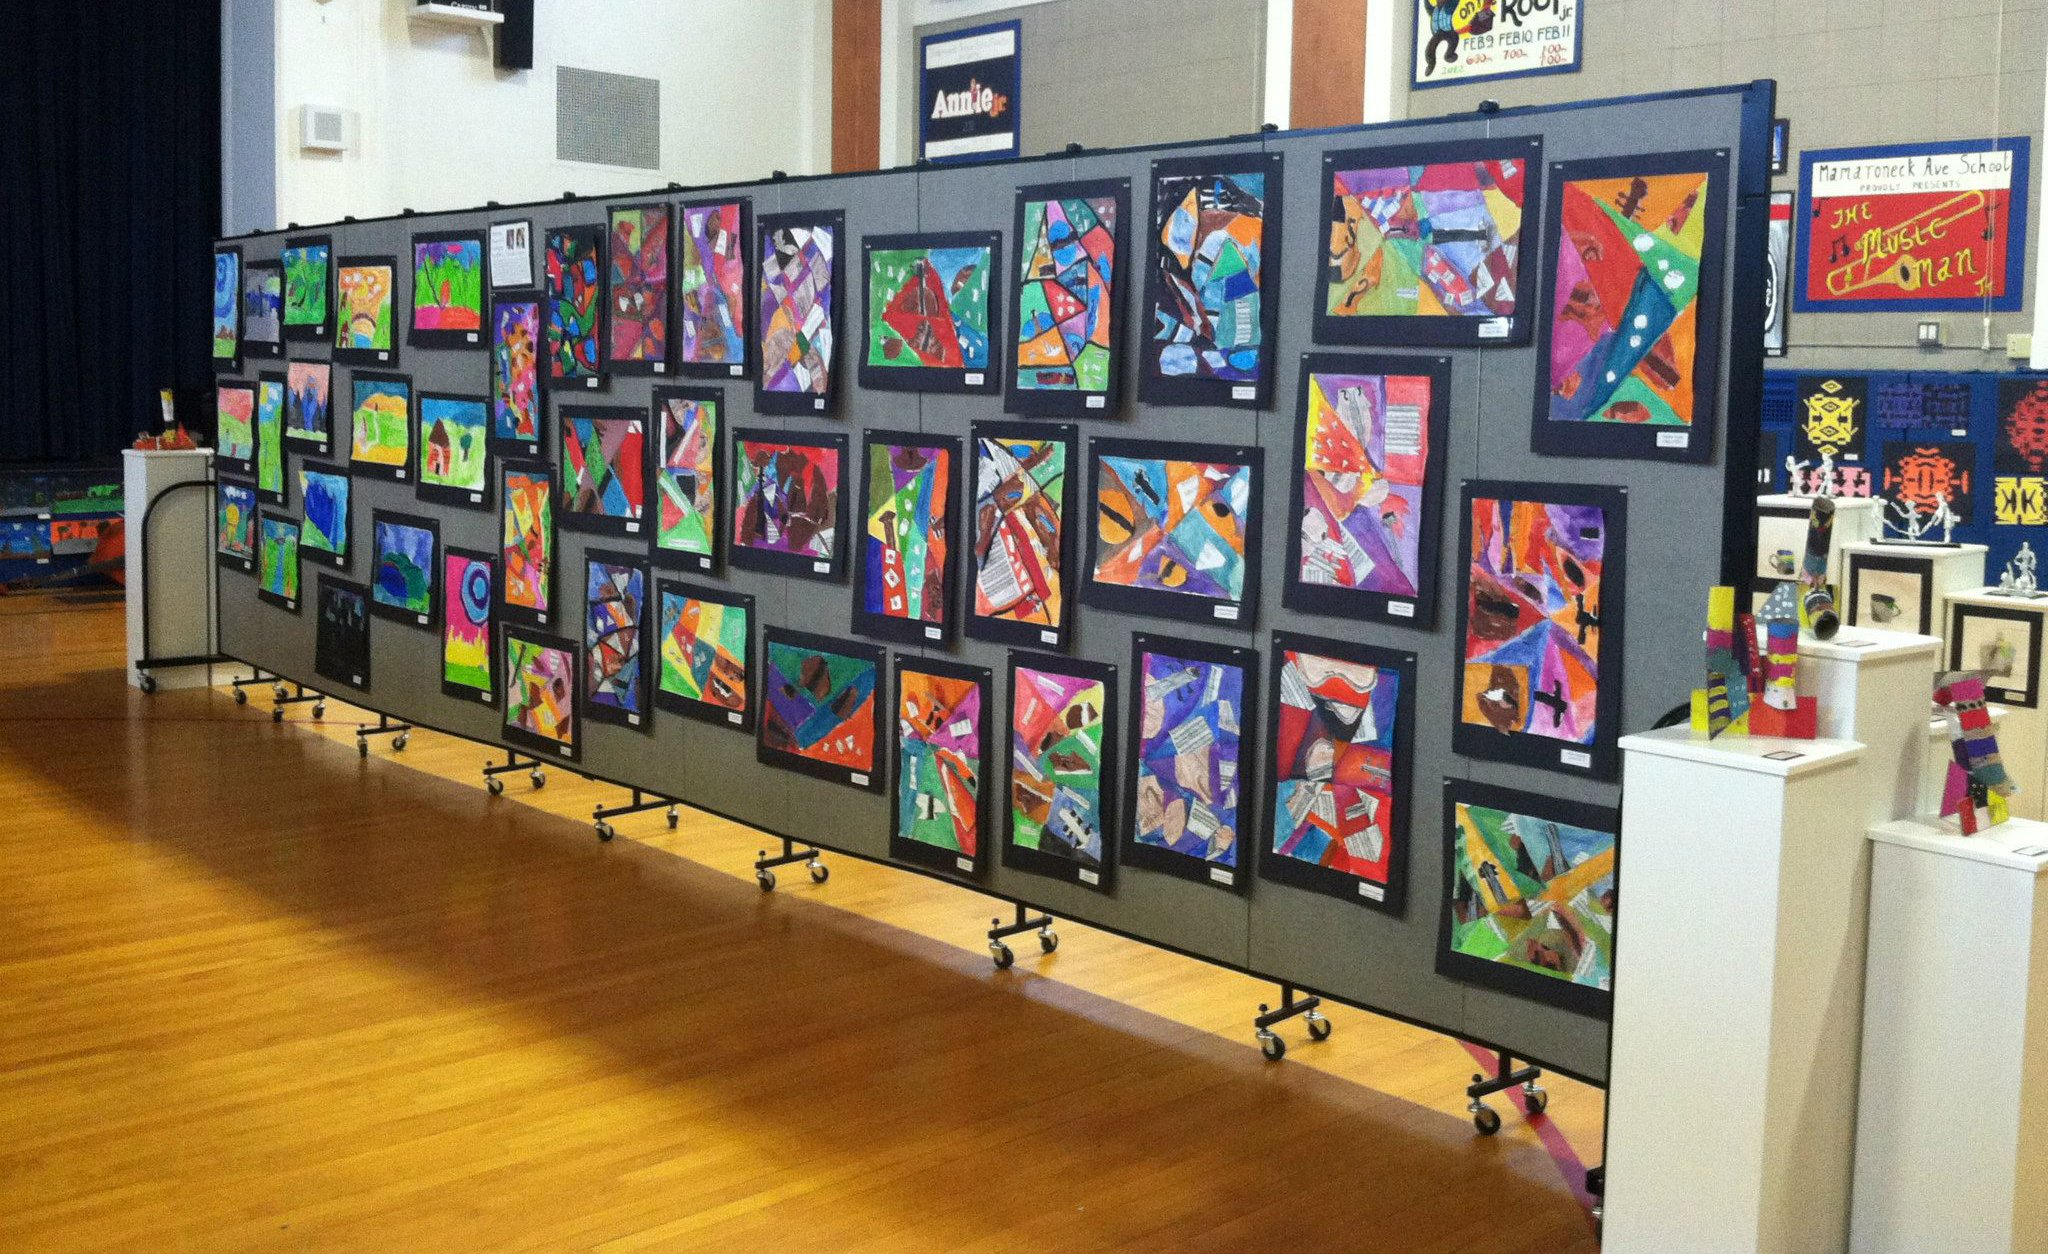 Tackable walls are used to display student artwork in a gymnasium with a wood floor